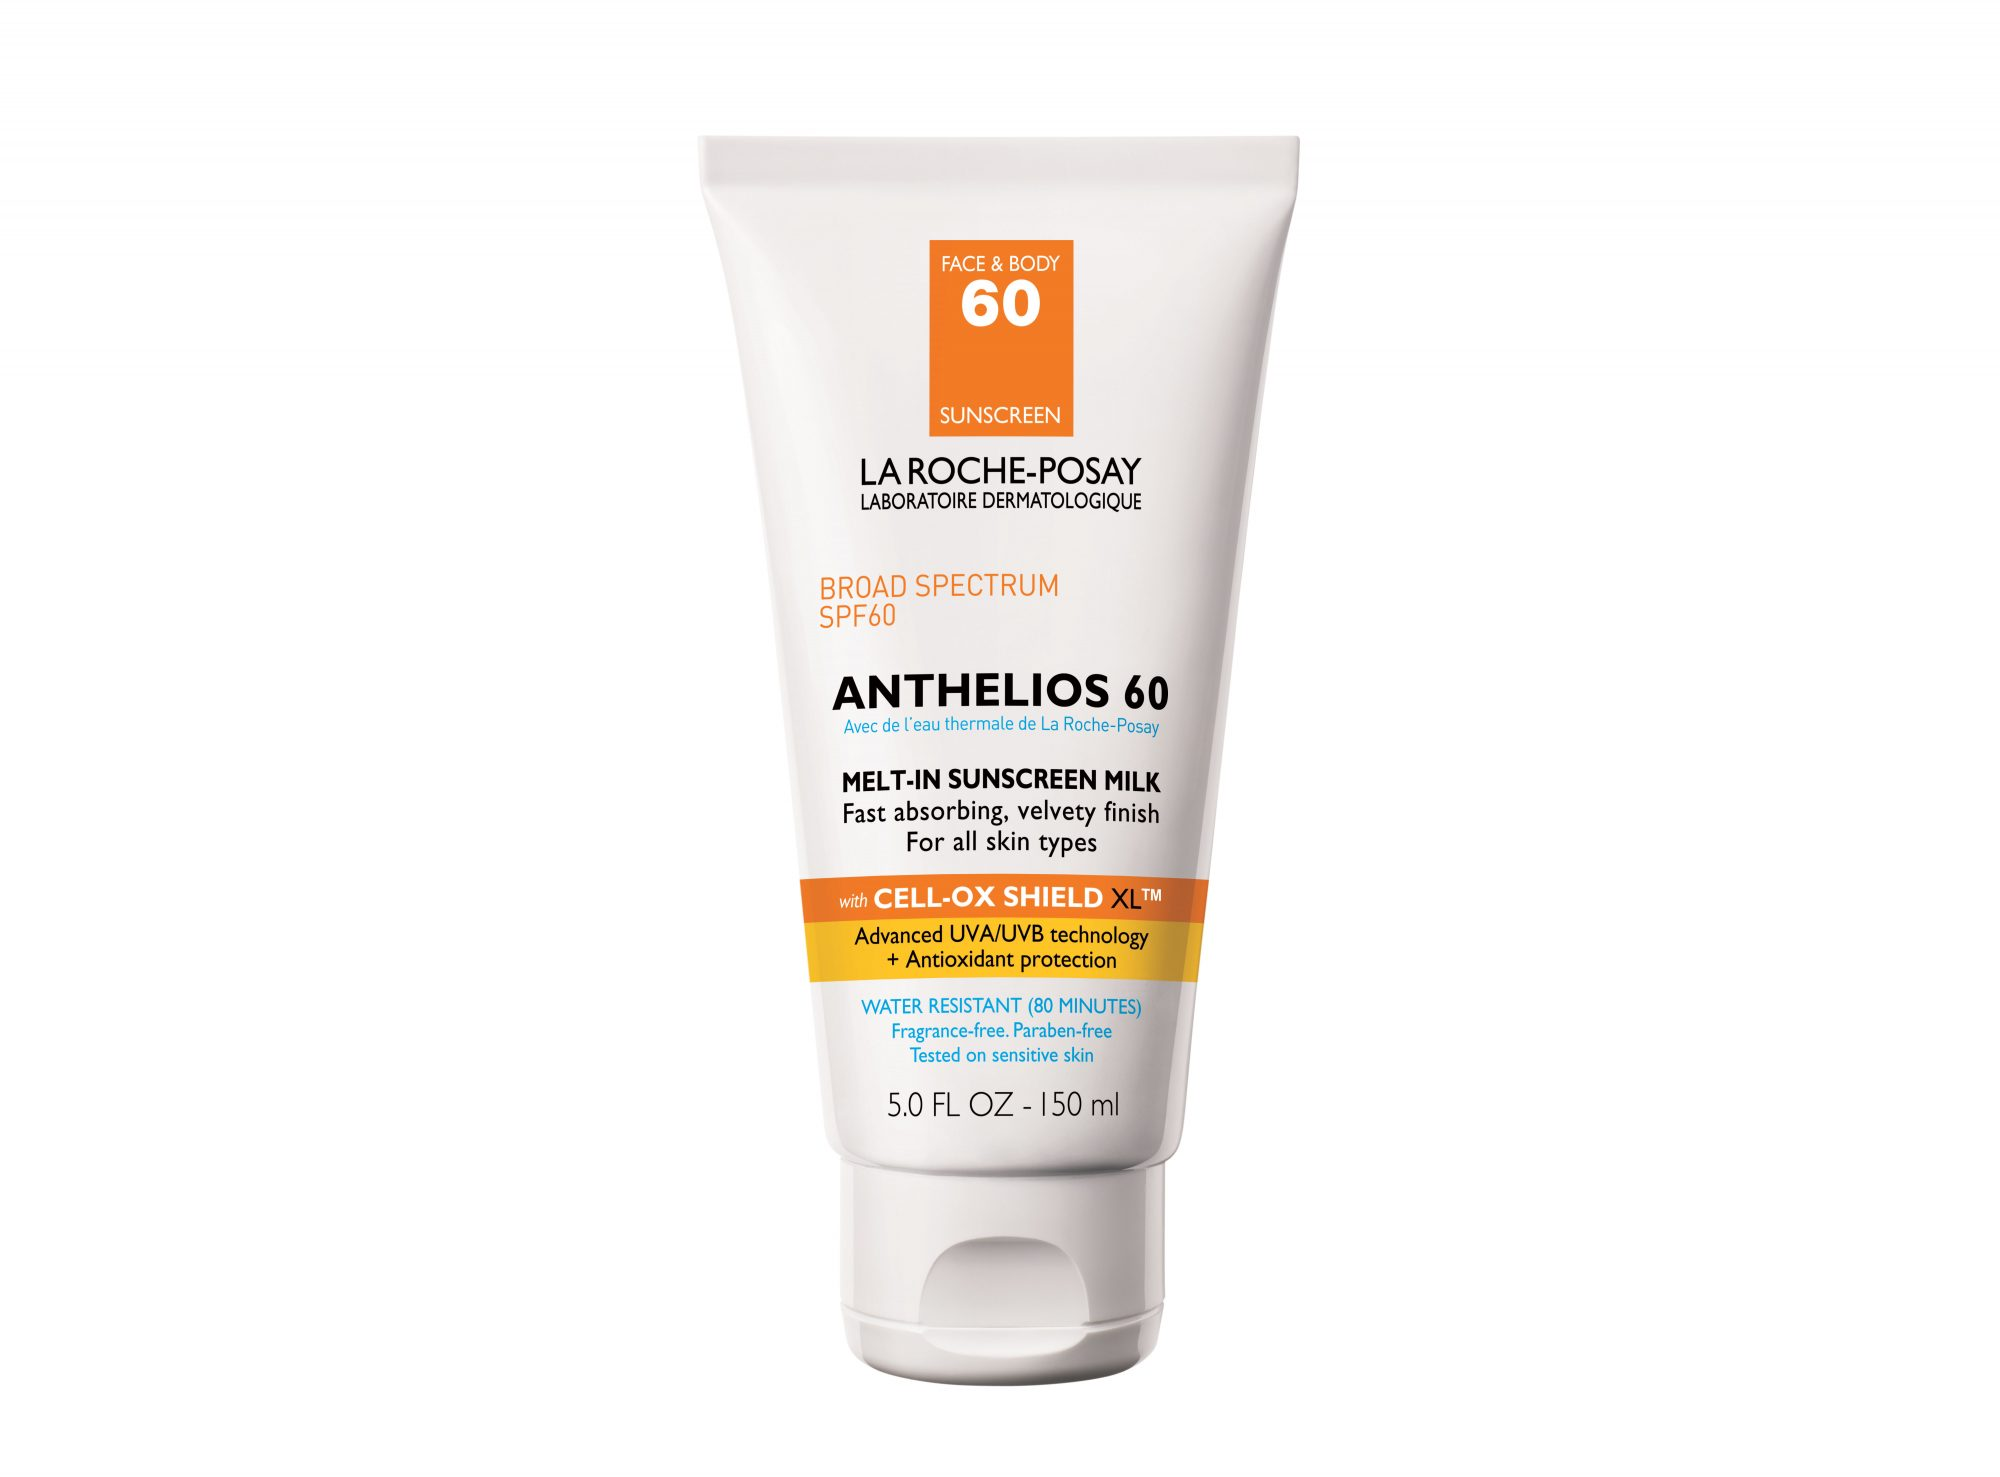 La Roche-Posay Top Consumer Reports Sunscreen